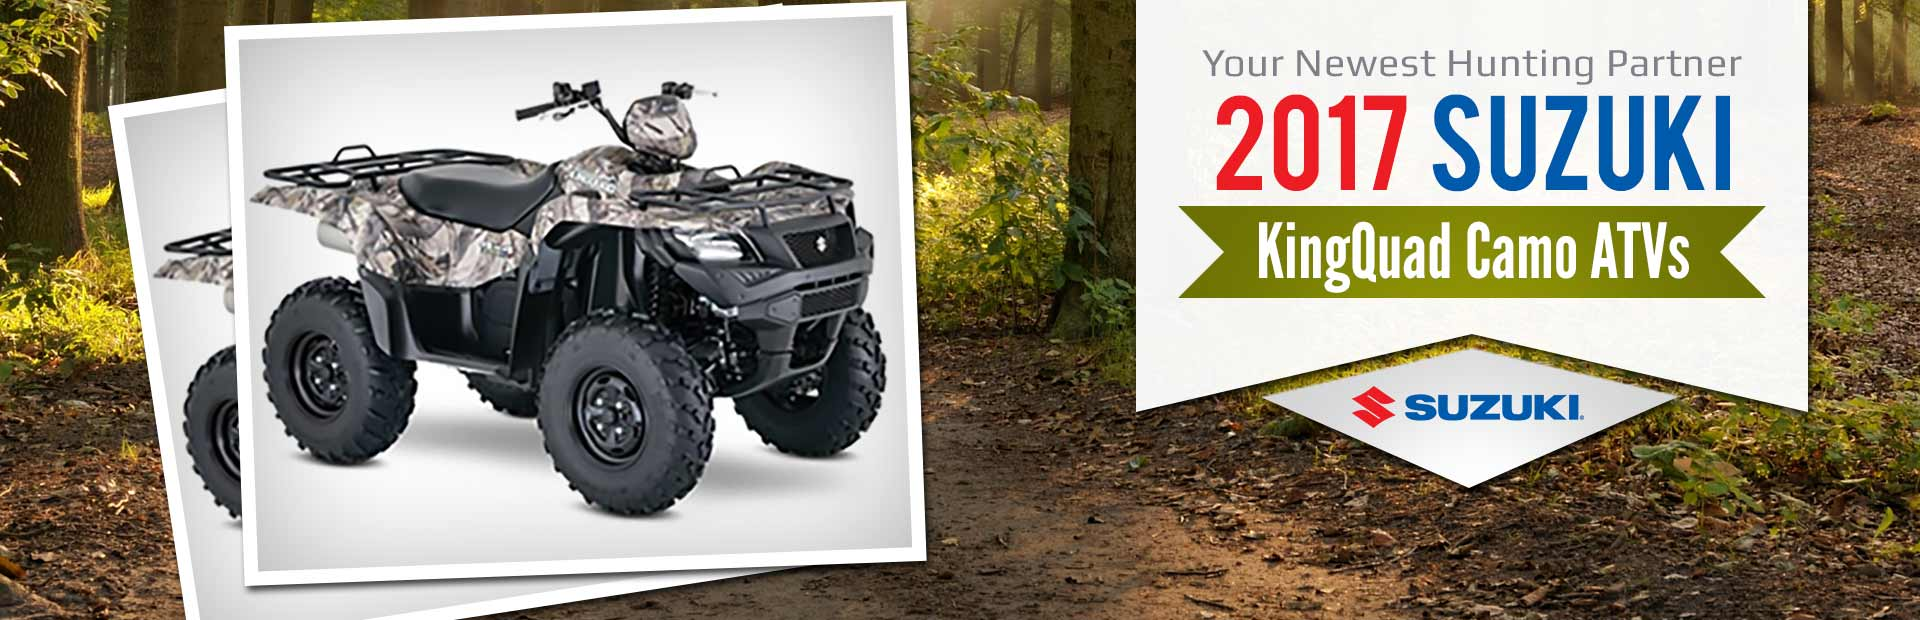 2017 Suzuki KingQuad Camo ATVs: Click here to view the lineup.